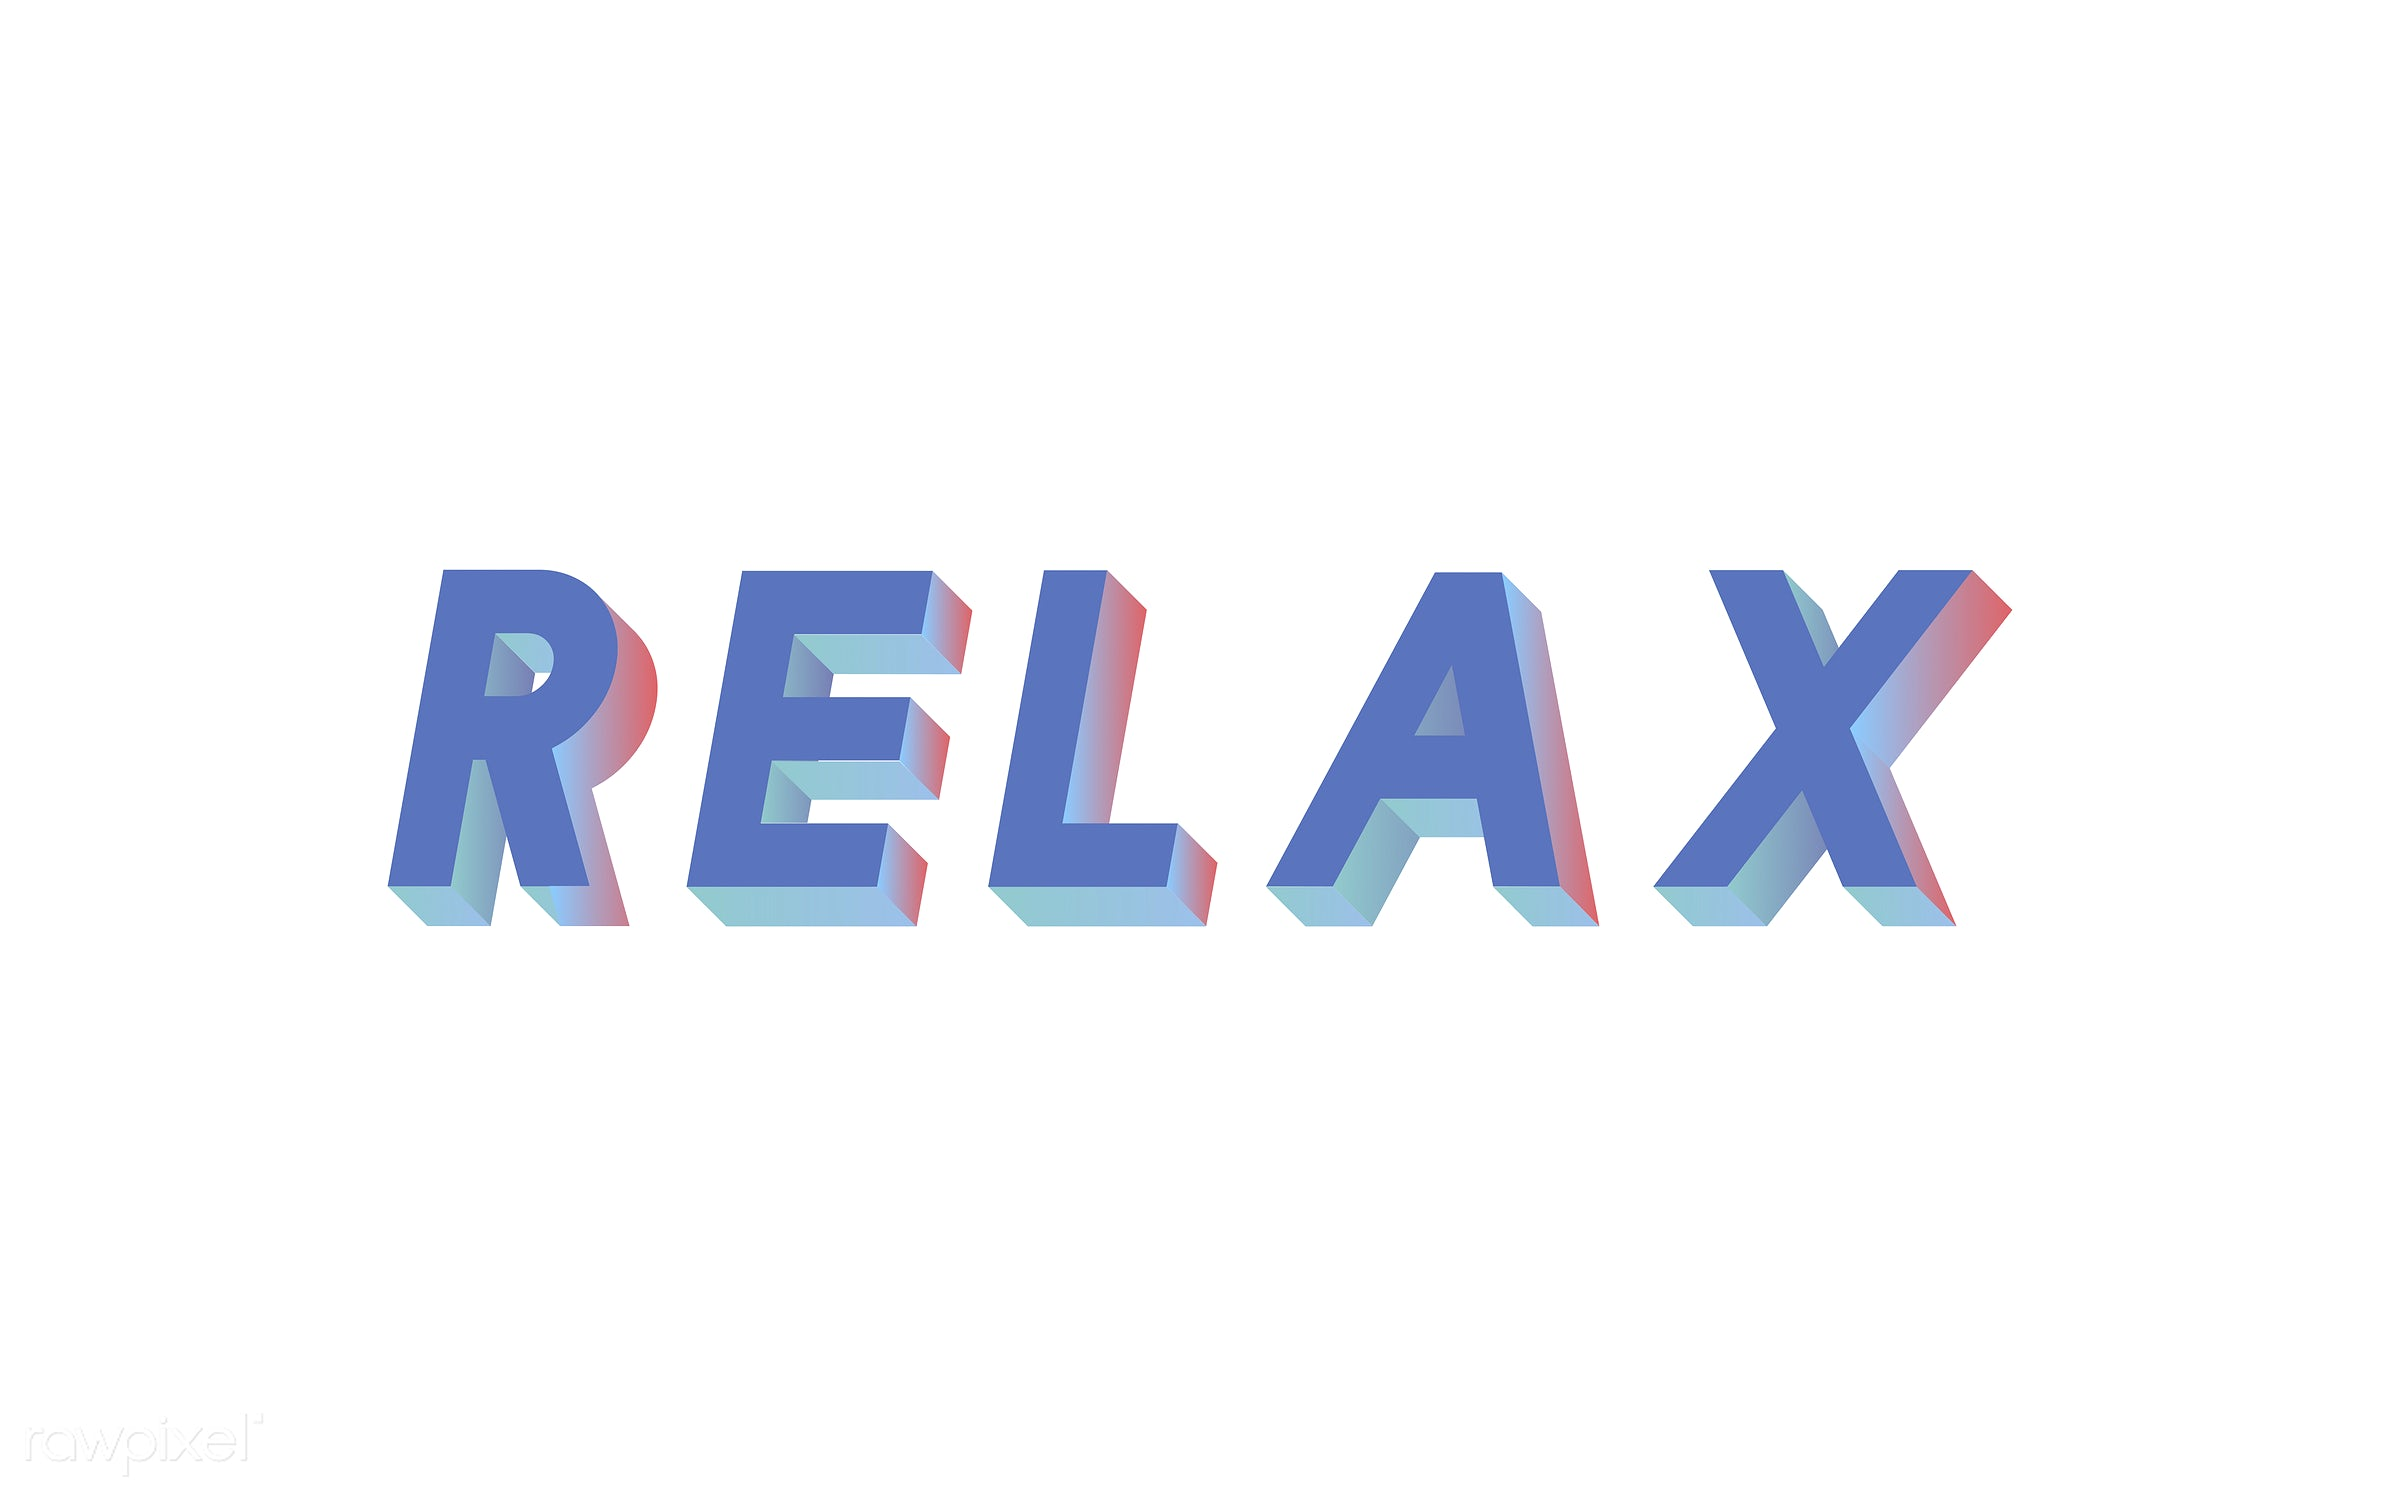 neon, colorful, 3d, three dimensional, vector, illustration, graphic, word, white, blue, relax, relaxing, relaxation